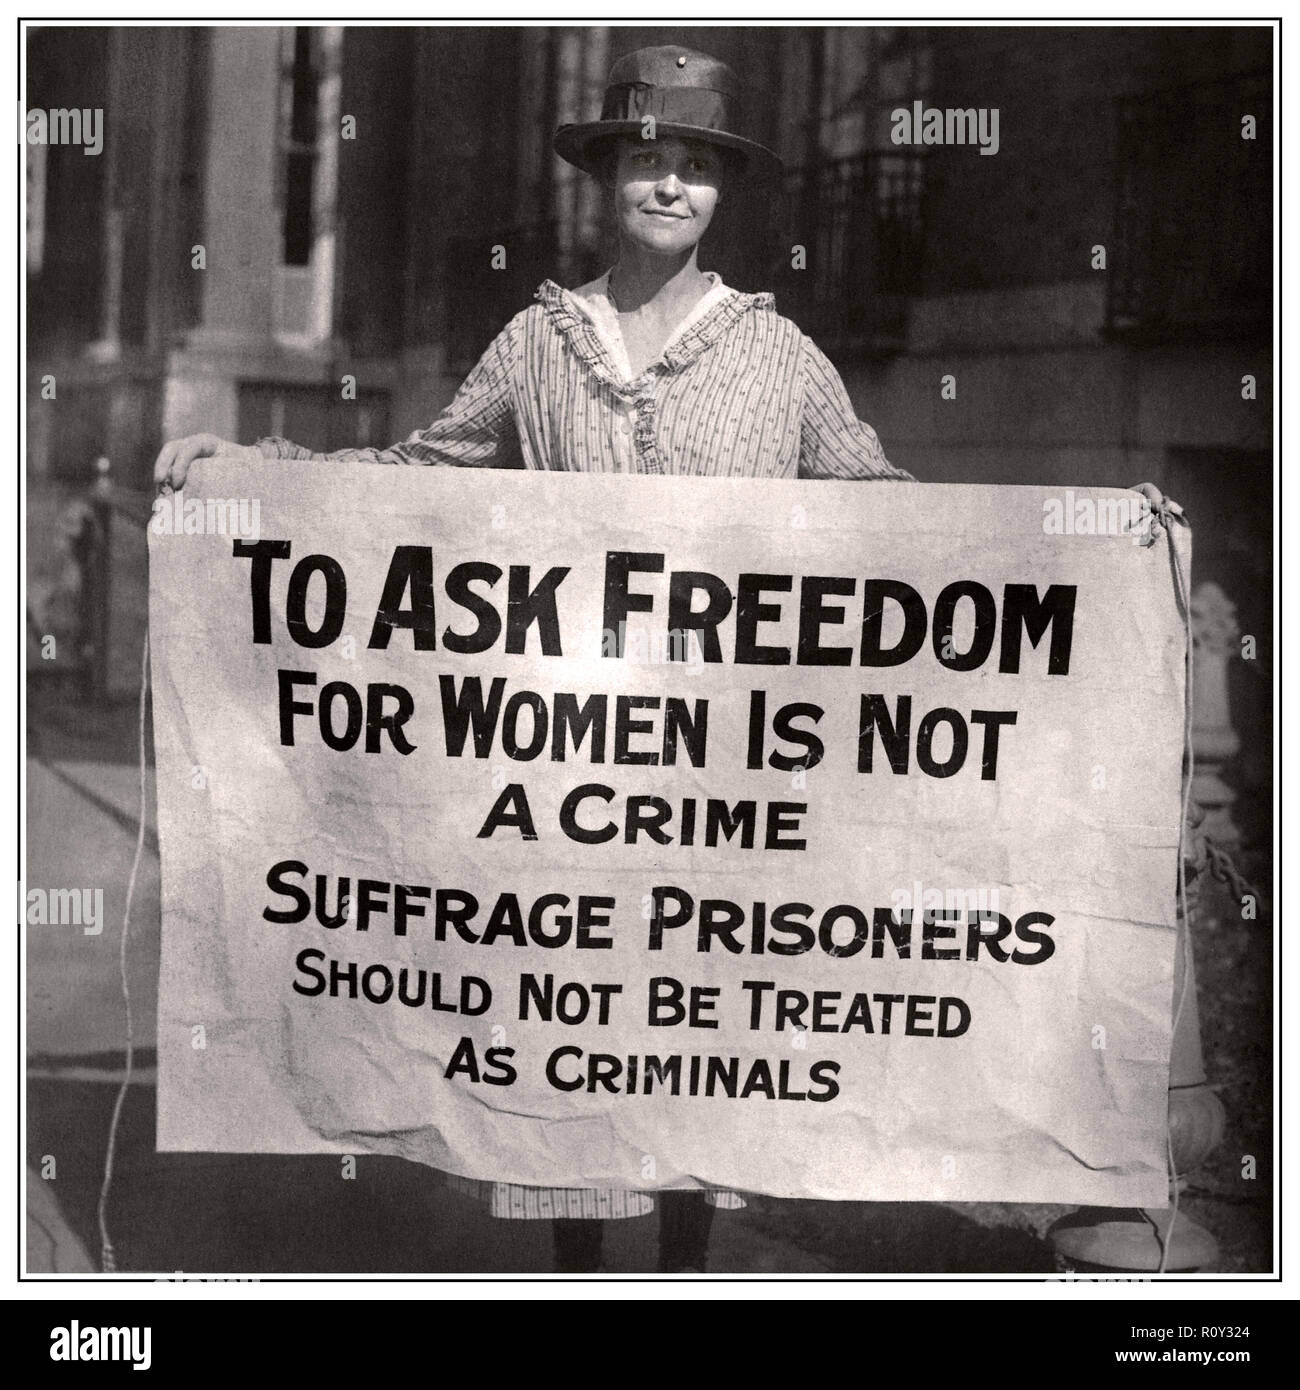 Vintage Women's suffrage Suffrage Image Woman Suffrage Picket Protests Banner Suffragist Protests Criminal Arrests of National Woman's Party Members, 1910s Washington DC Stock Photo